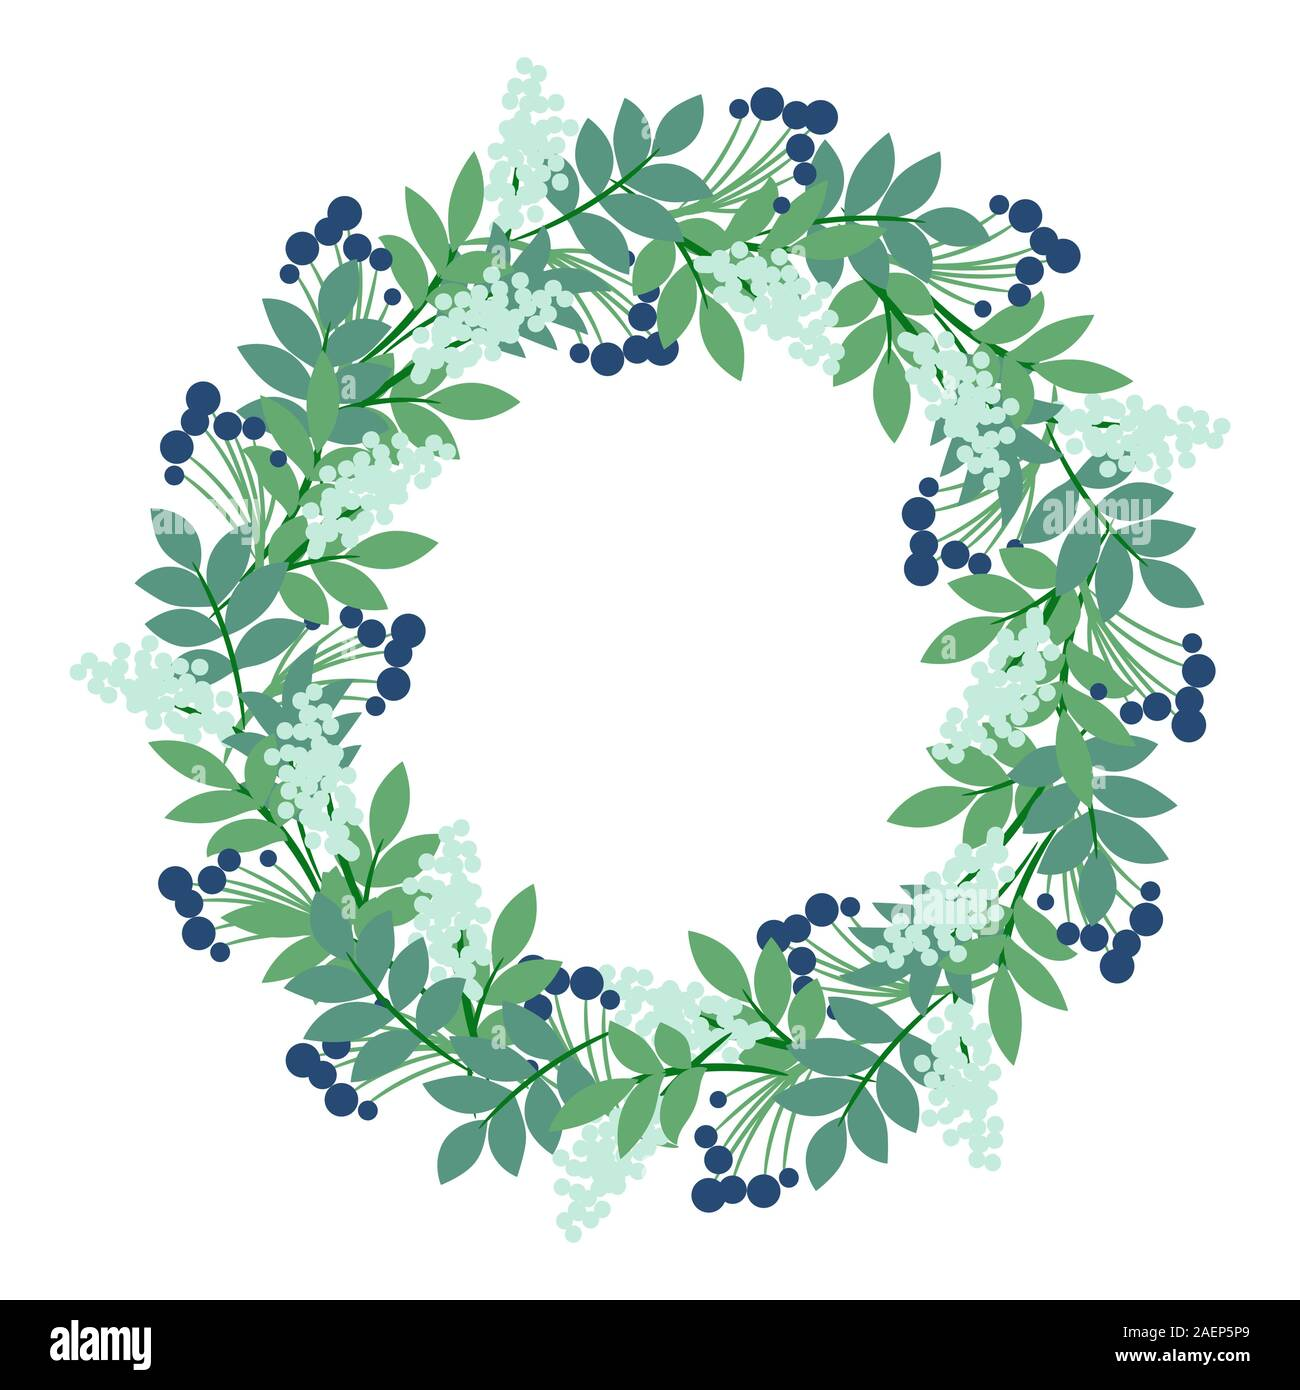 Floral wreath vector clipart illustration. Flower garland for craft and scrapbook. Stock Vector